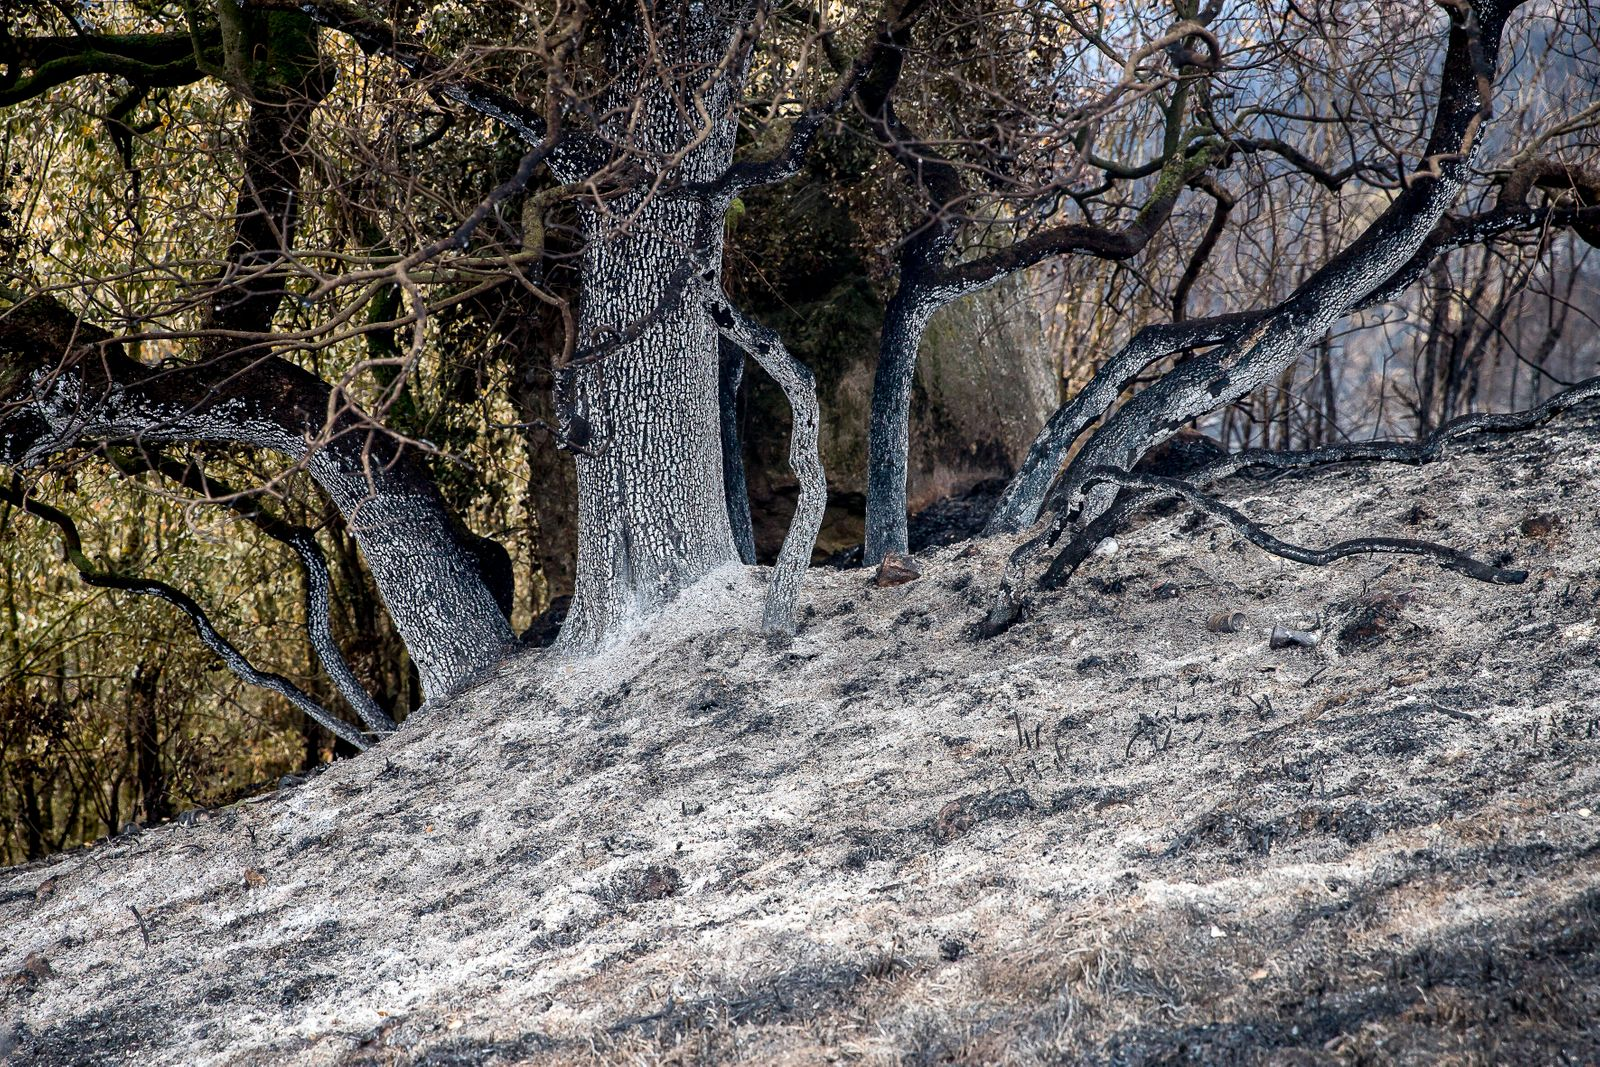 Wildfire In Catalonia Firefighters and volunteers are working to stop the wildfire in the counties of Anoia and Conca de